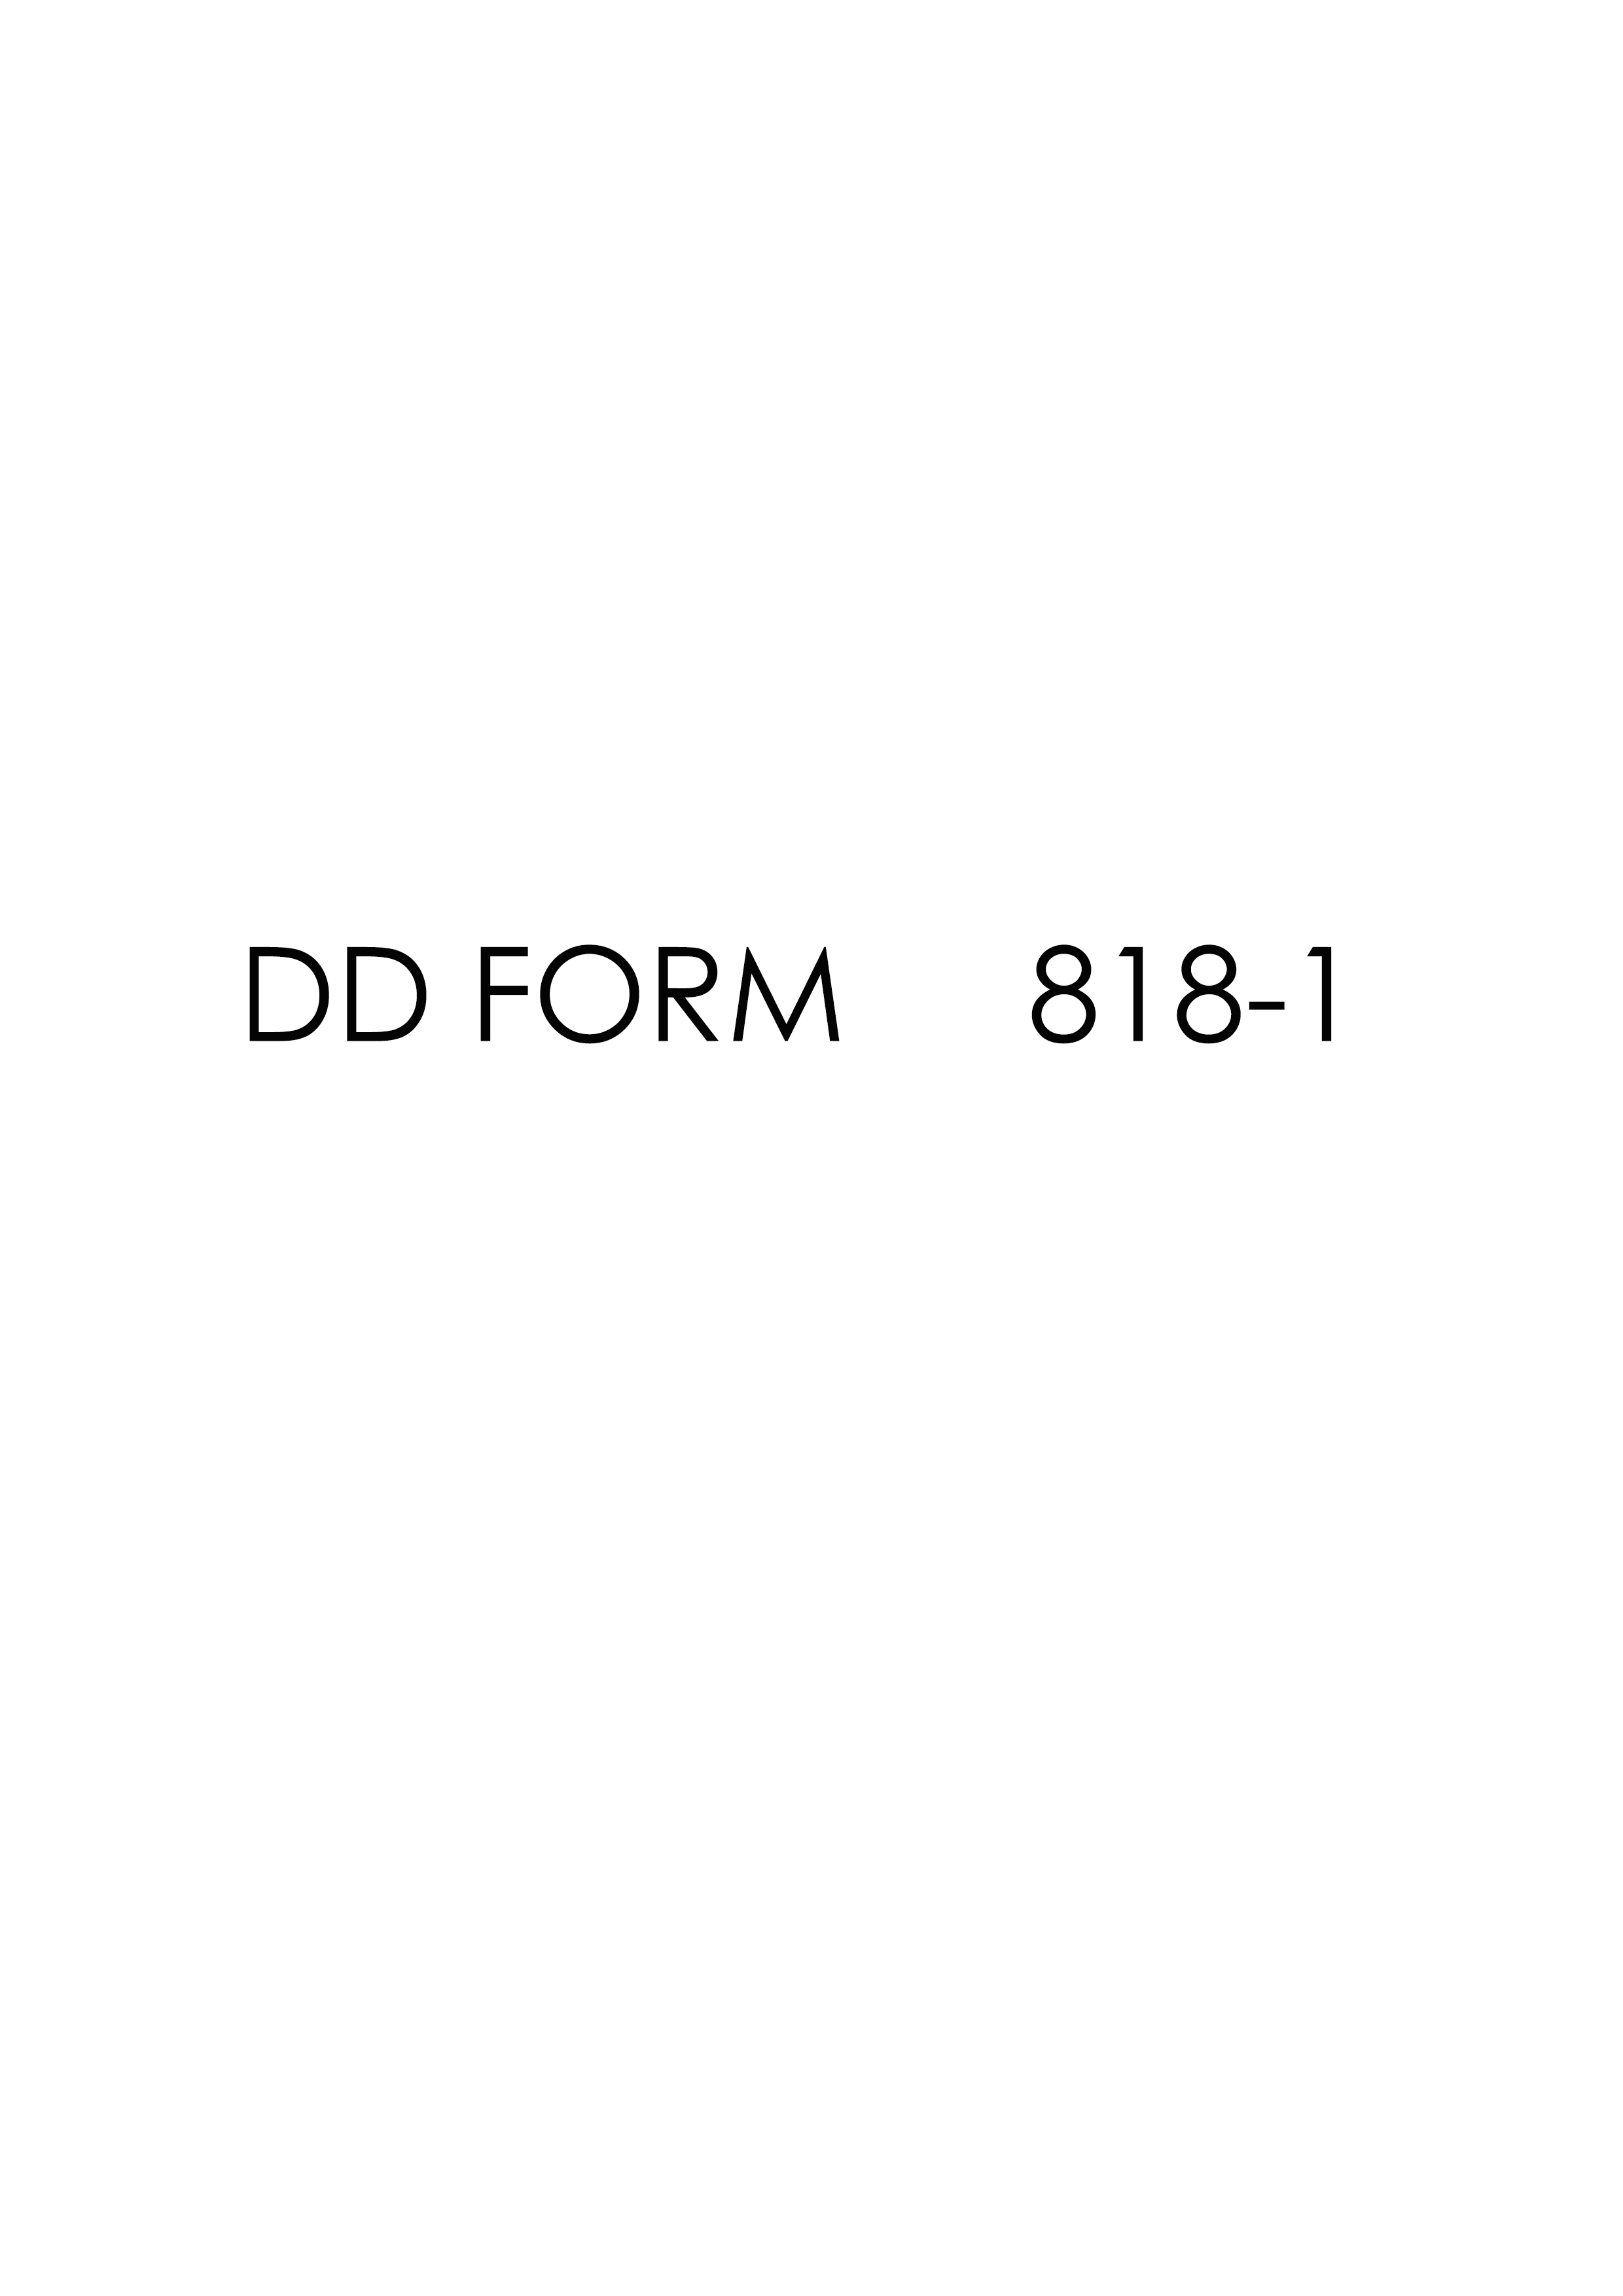 Download Fillable dd Form 818-1